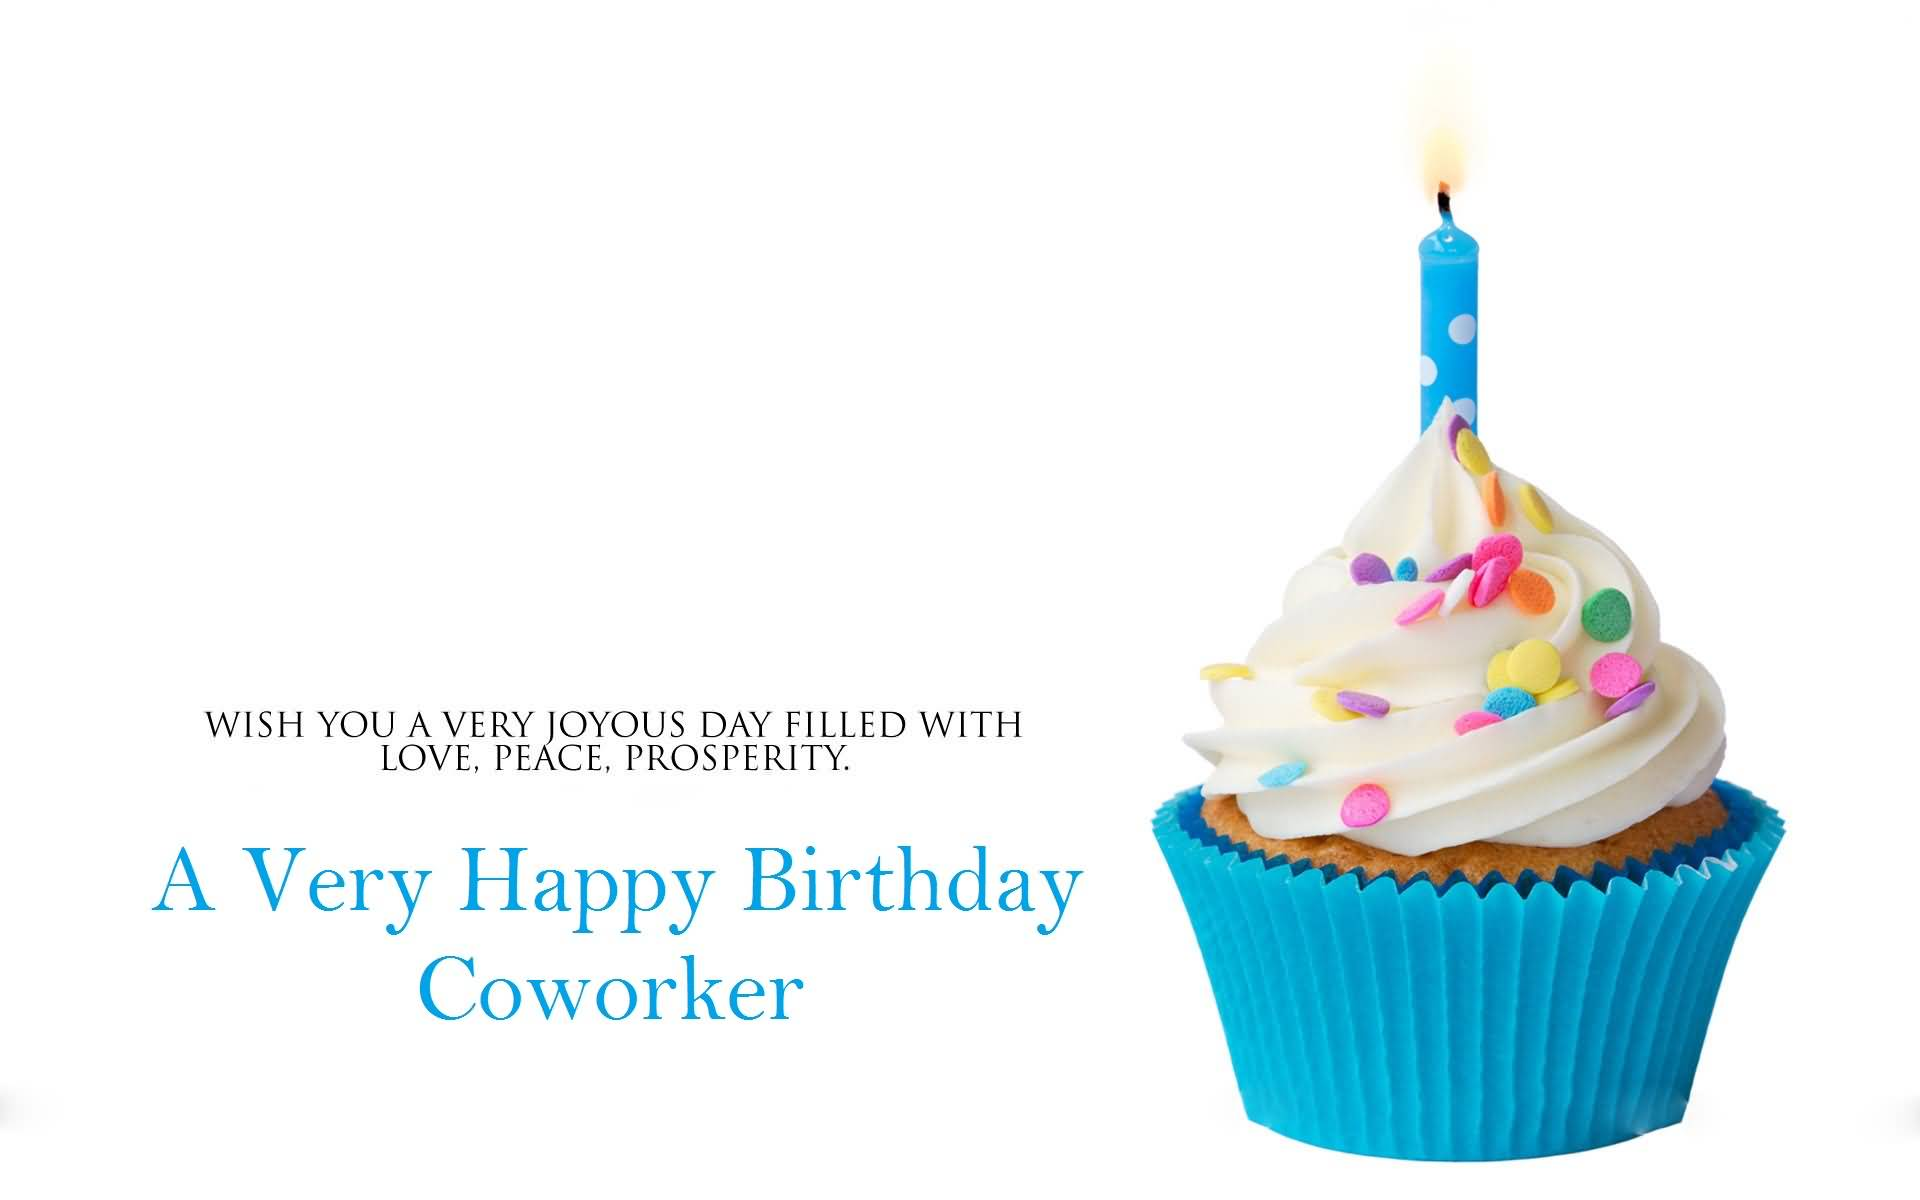 Pin coworker with a farewell cake laughing cow embroidery designs cake